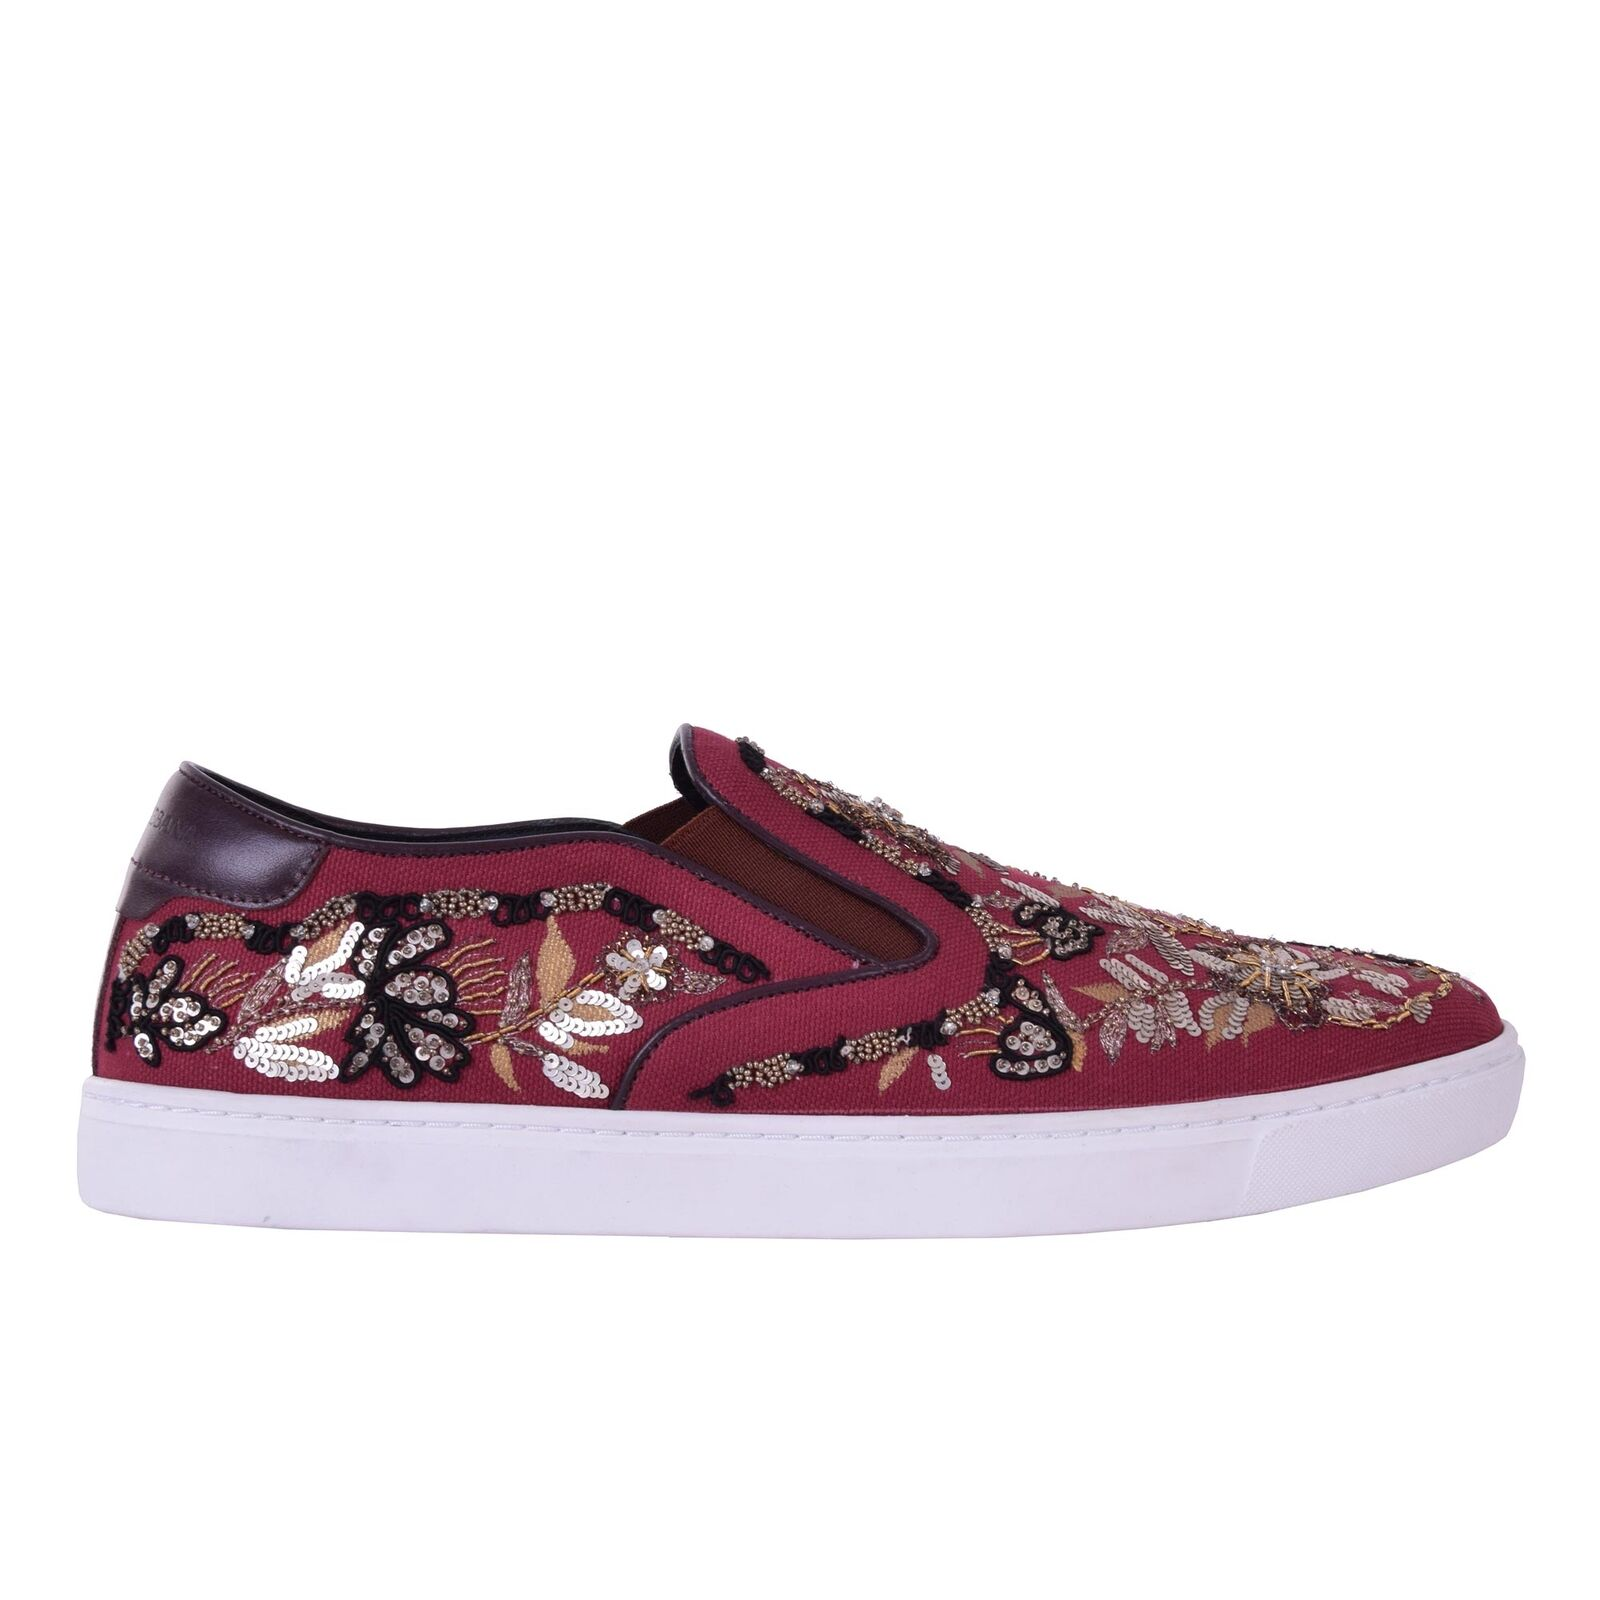 Scarpe casual da uomo  DOLCE & GABBANA Gold Embroidered Slip-On Sneaker Sneakers LONDON Shoes Red 06629